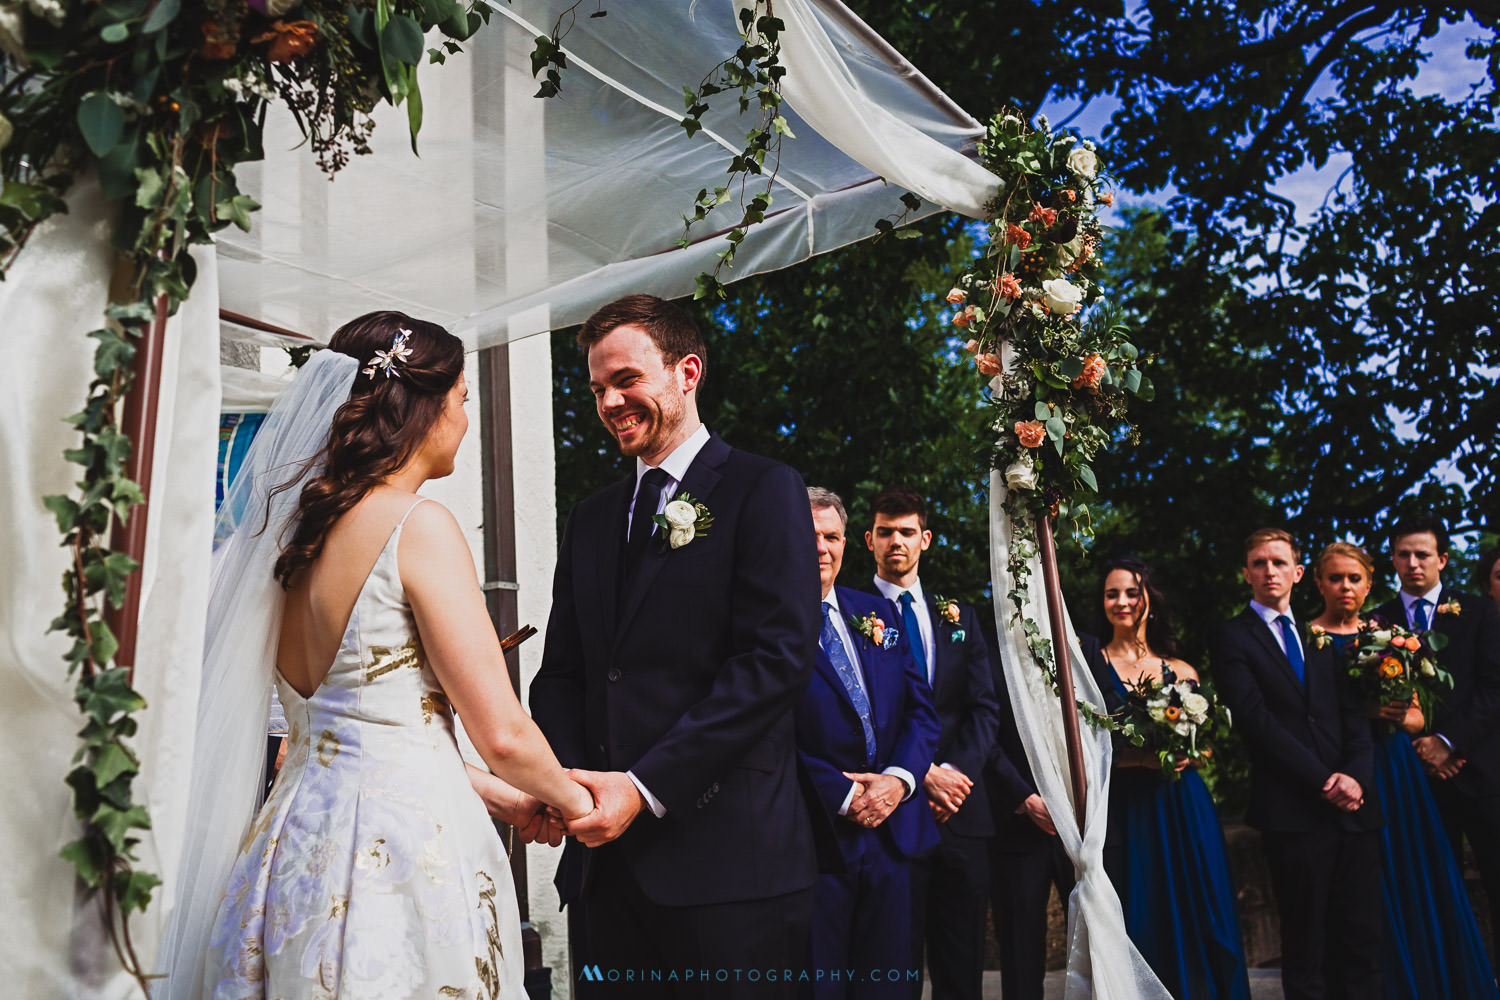 Brittany & Cameron Wedding at American Swedish Museum 35.jpg